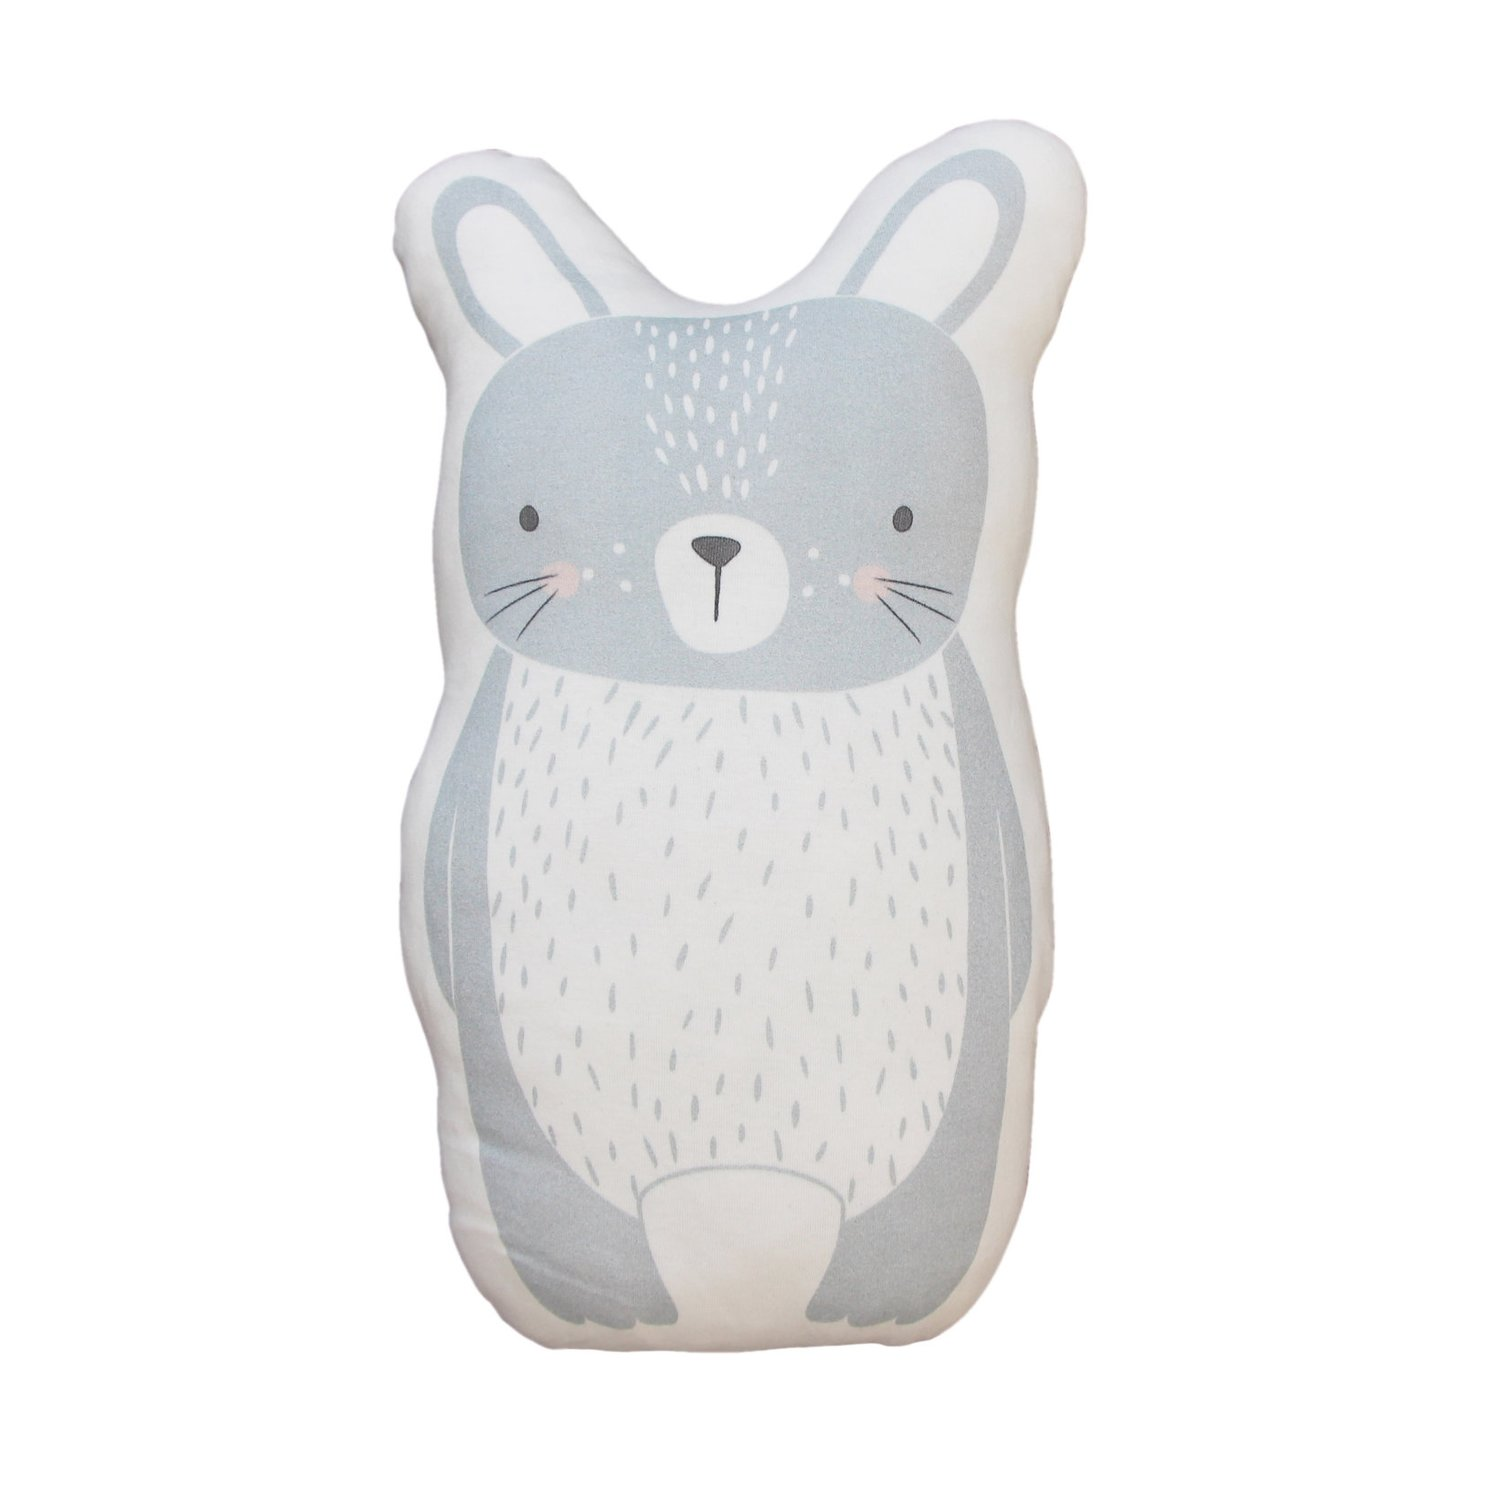 Mister Fly Bunny Cushion